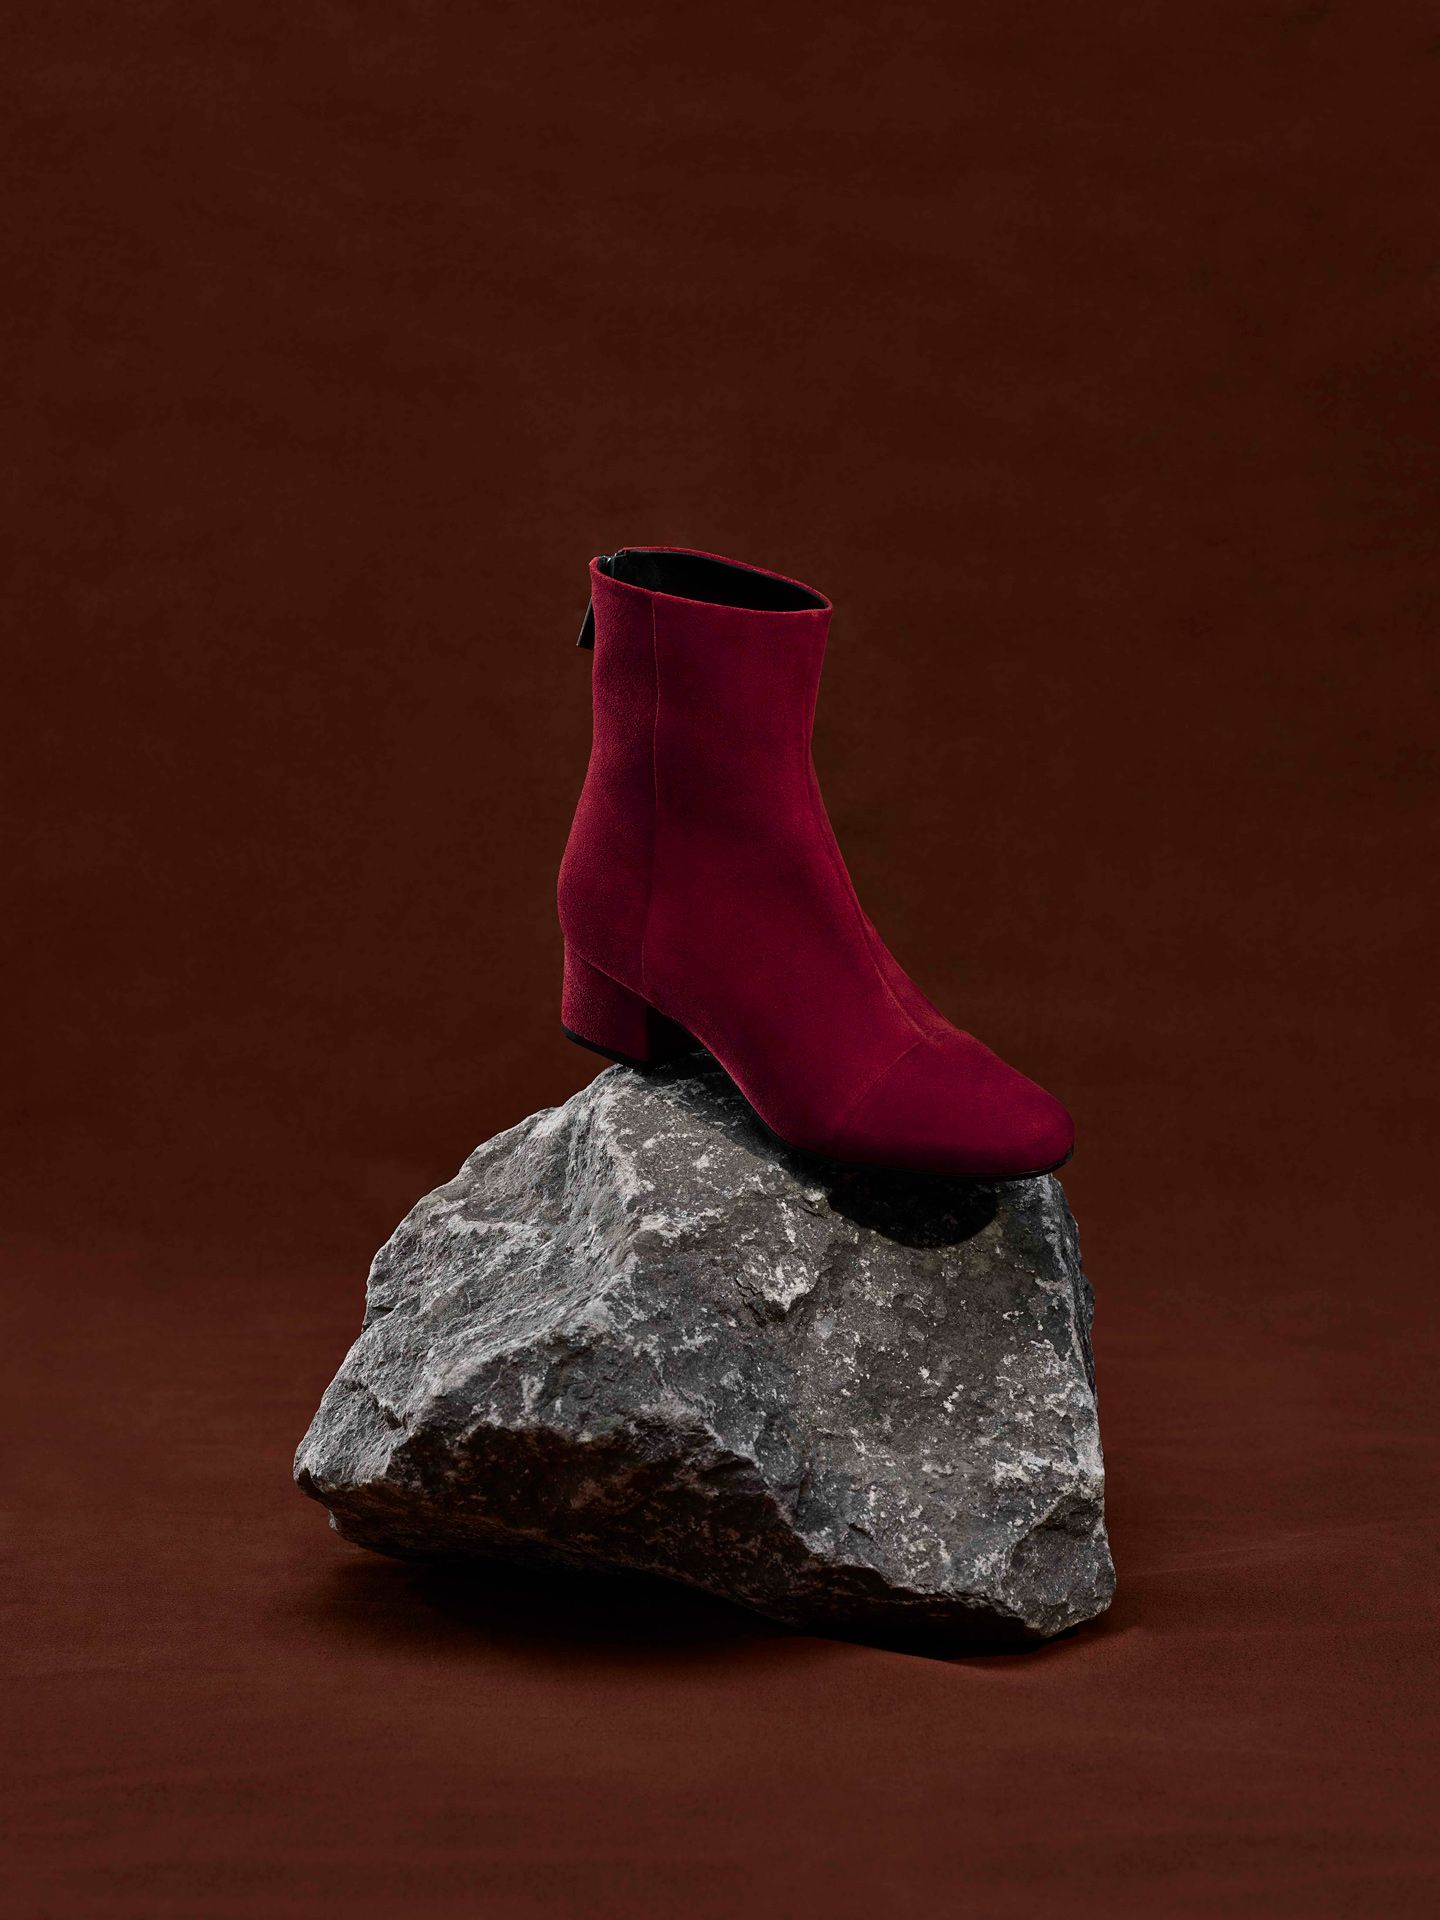 red suede boot on grey rock over red-brown background by Maxyme G Delisle with artistic direction from Studio TB for Jean-Paul Fortin Fall collection